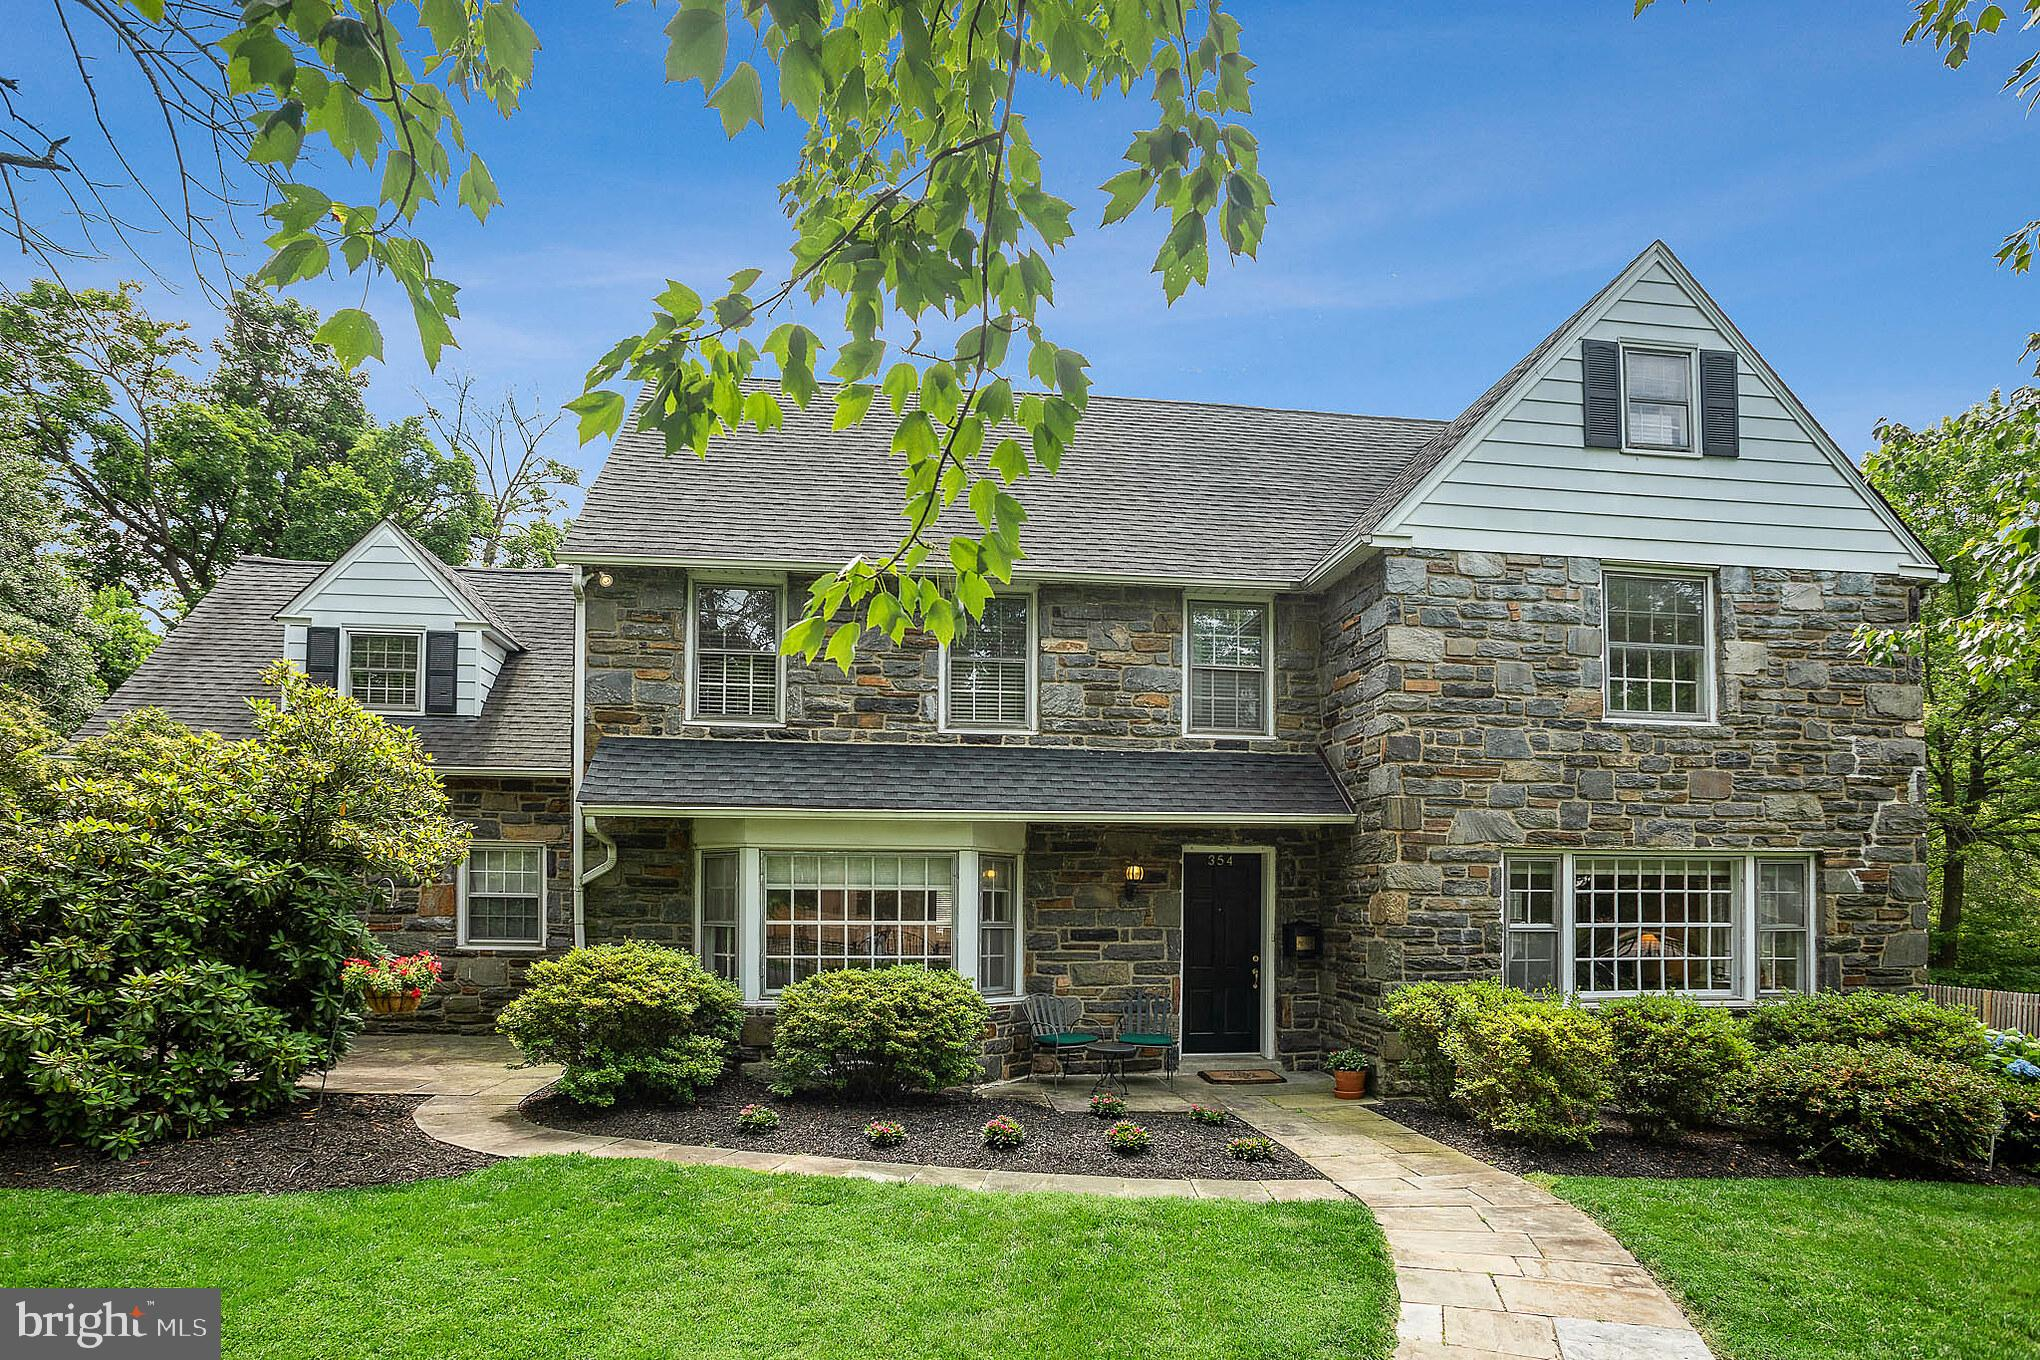 354 N BOWMAN AVENUE, MERION STATION, PA 19066